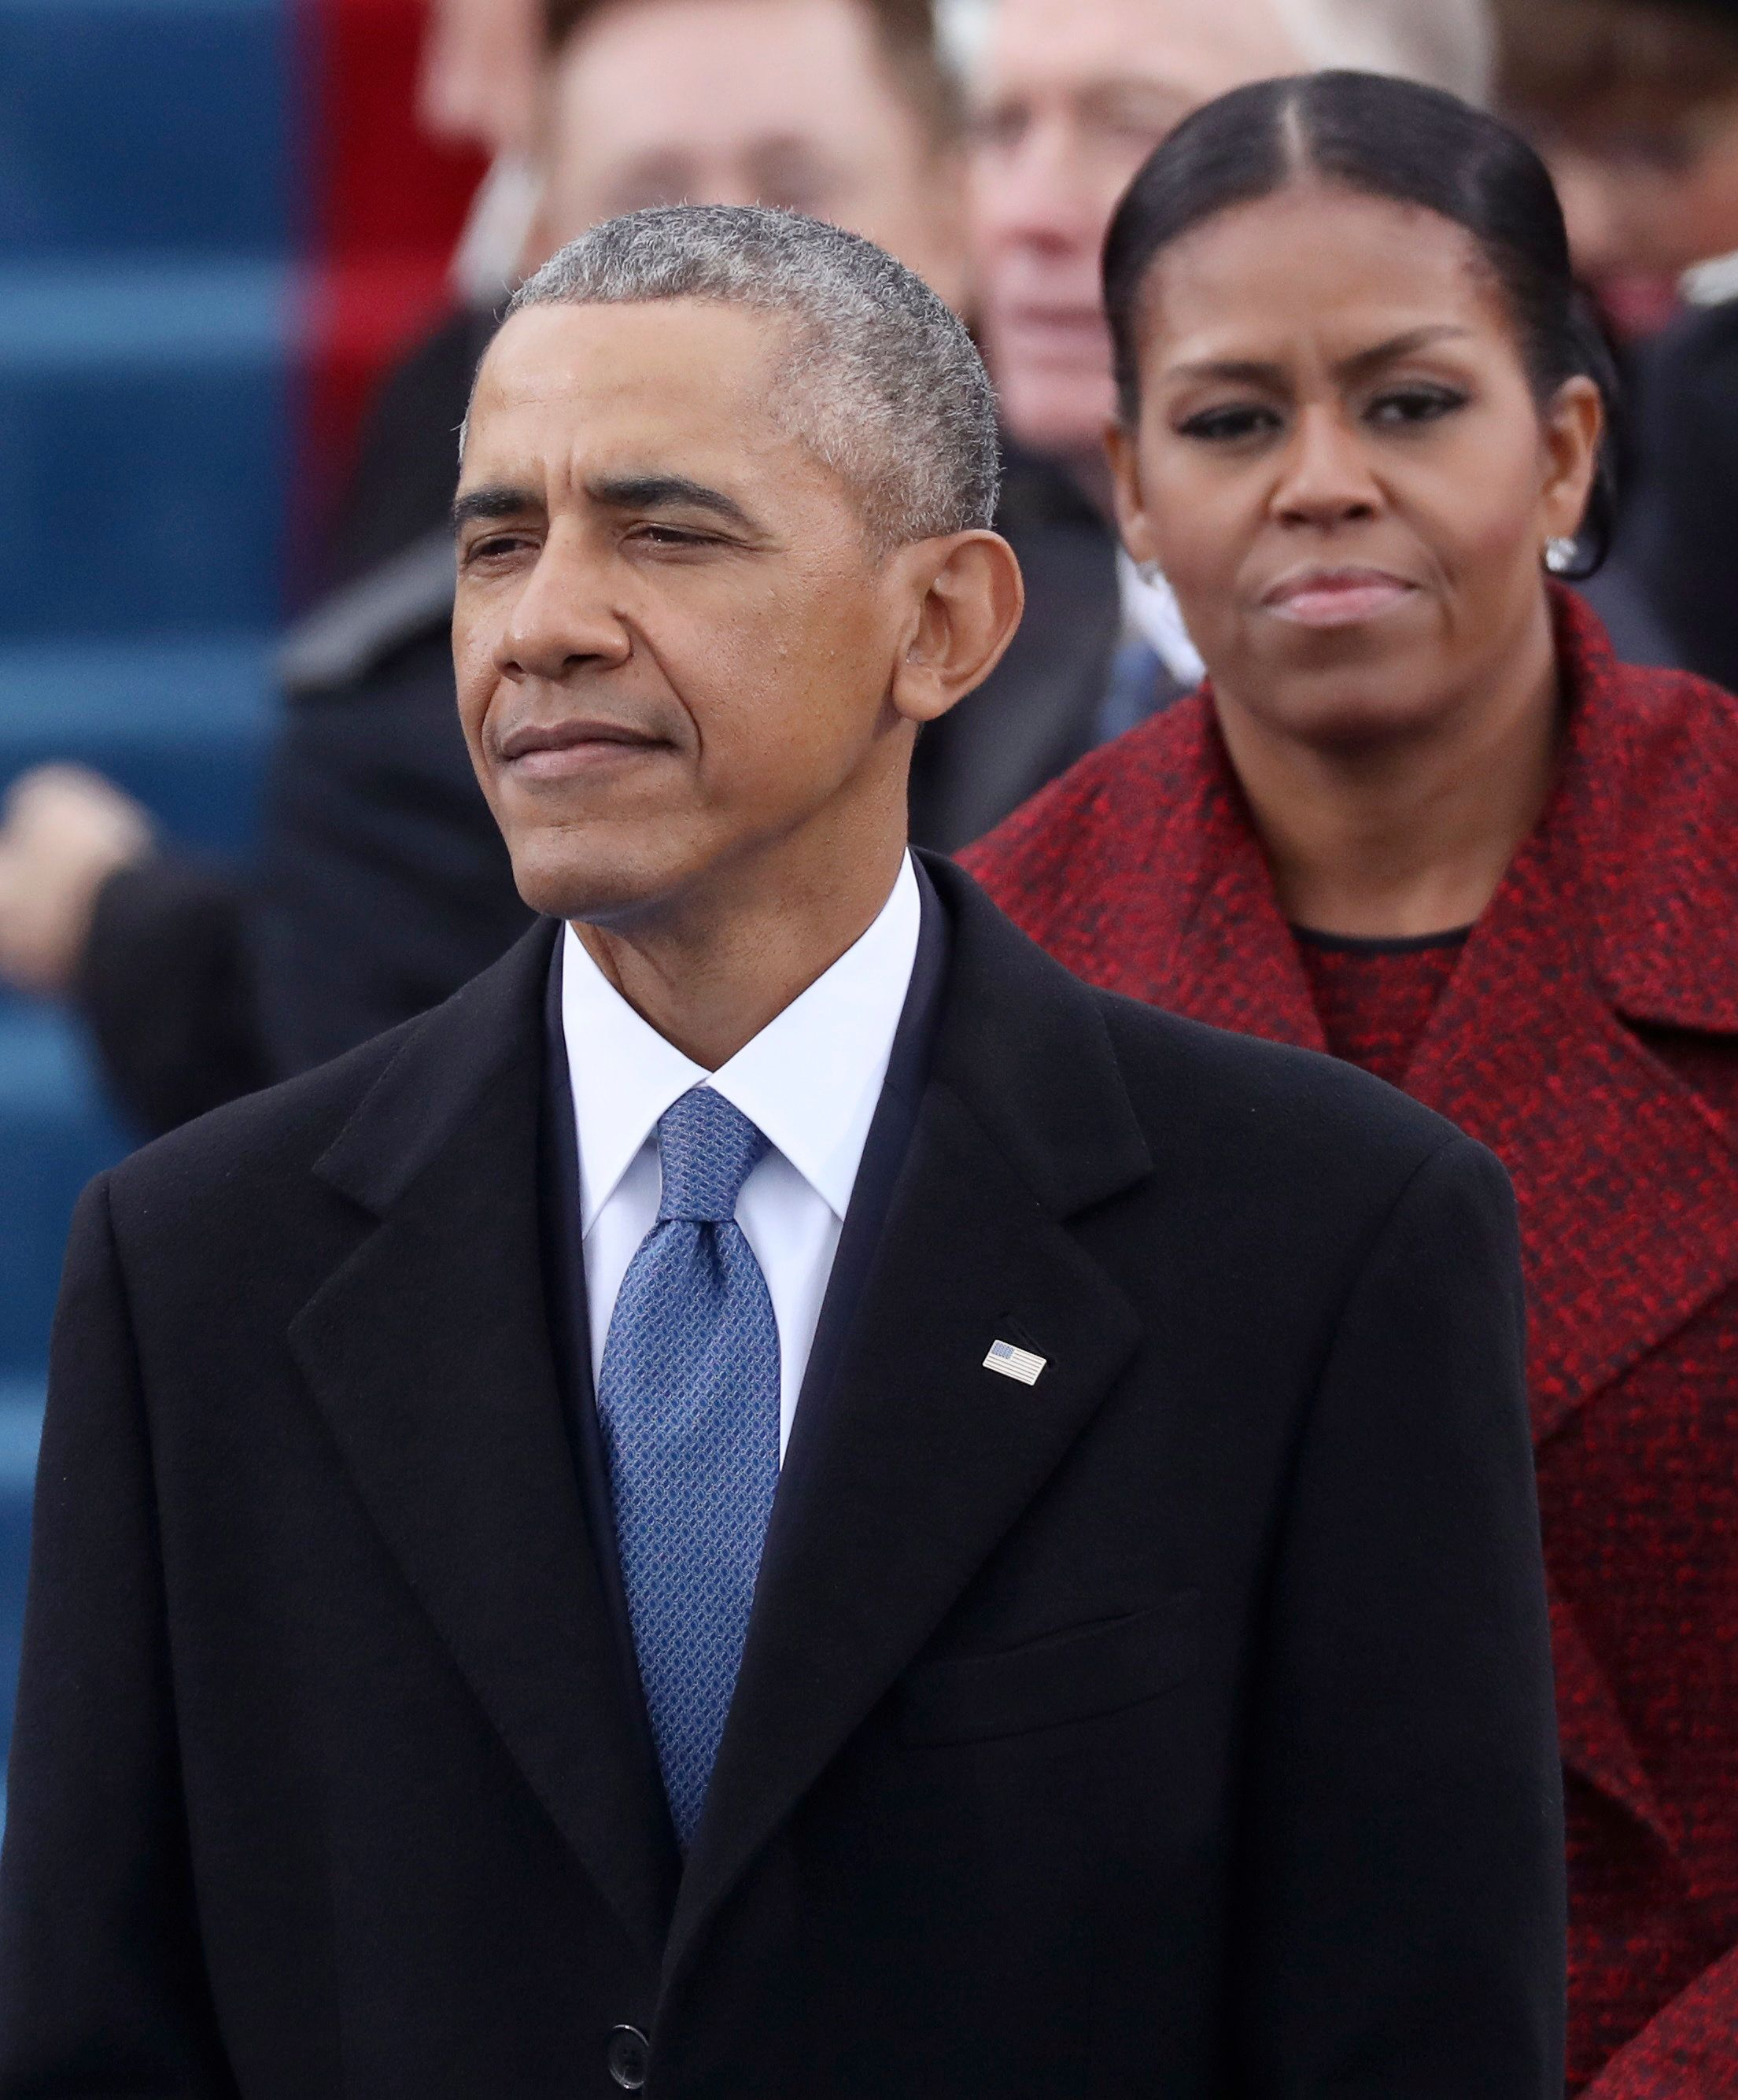 Barack and Michelle Obama 'Disgusted' Over Harvey Weinstein Sex